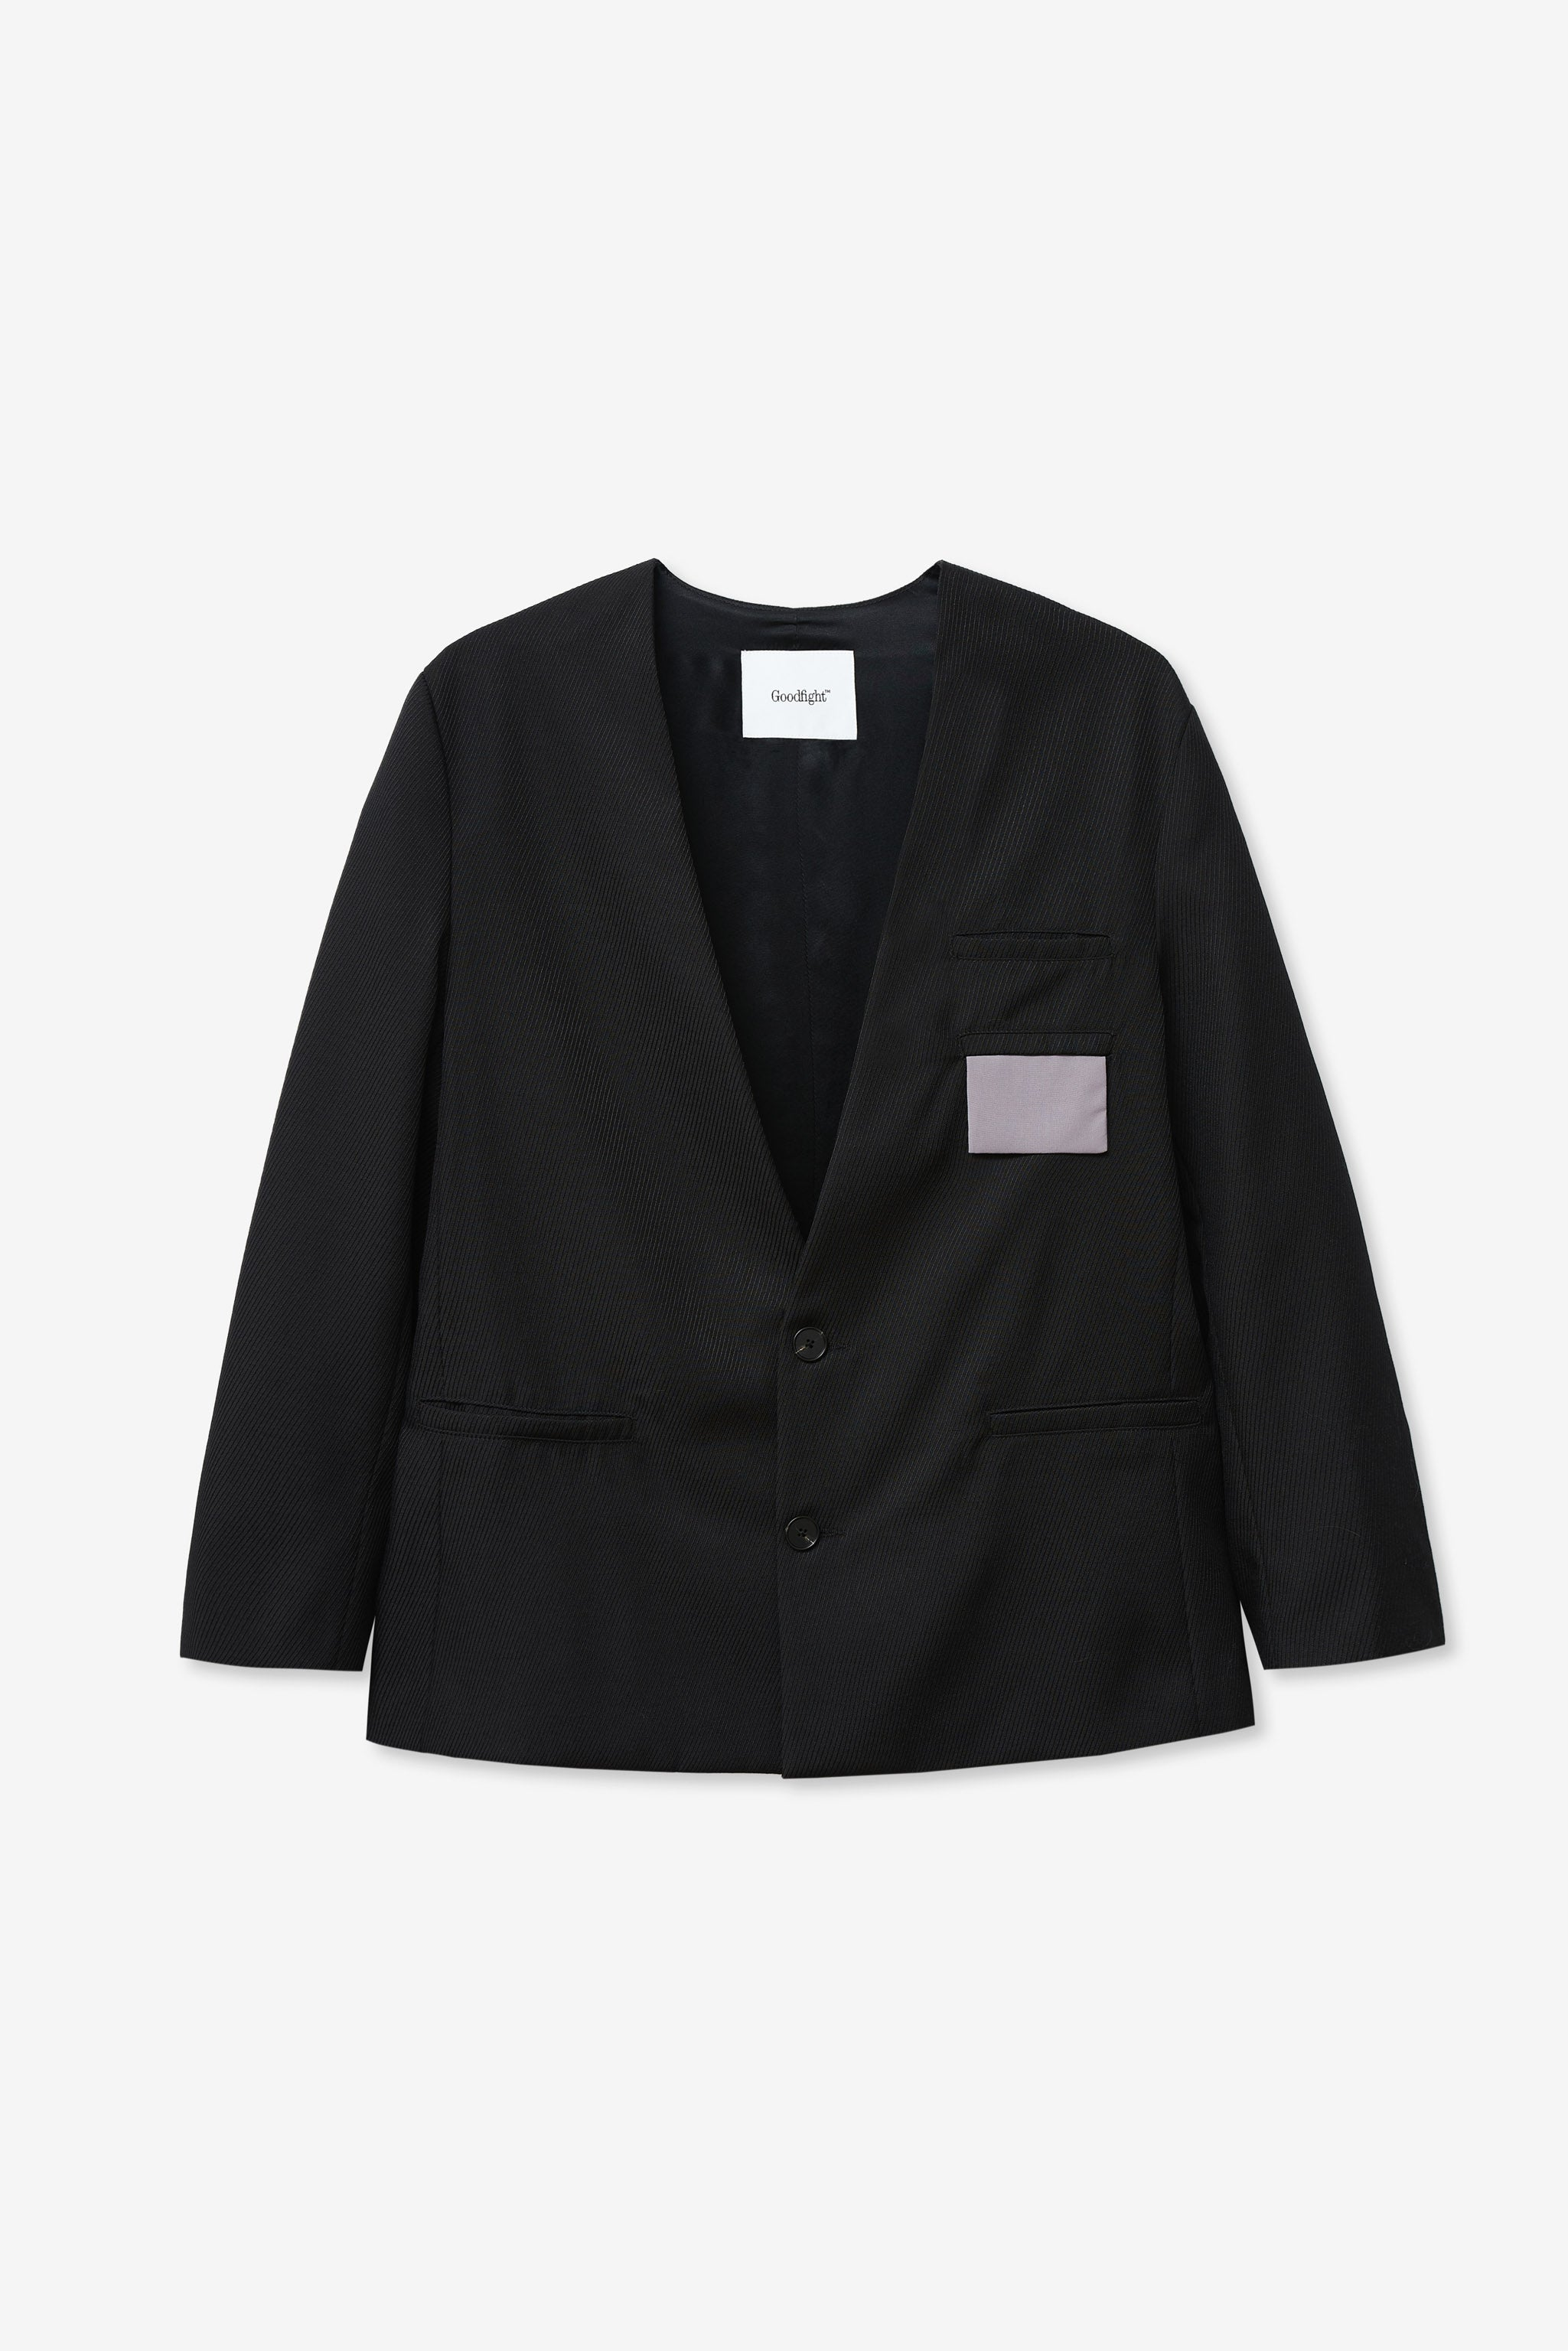 Goodfight Collar Chameleon Blazer Black